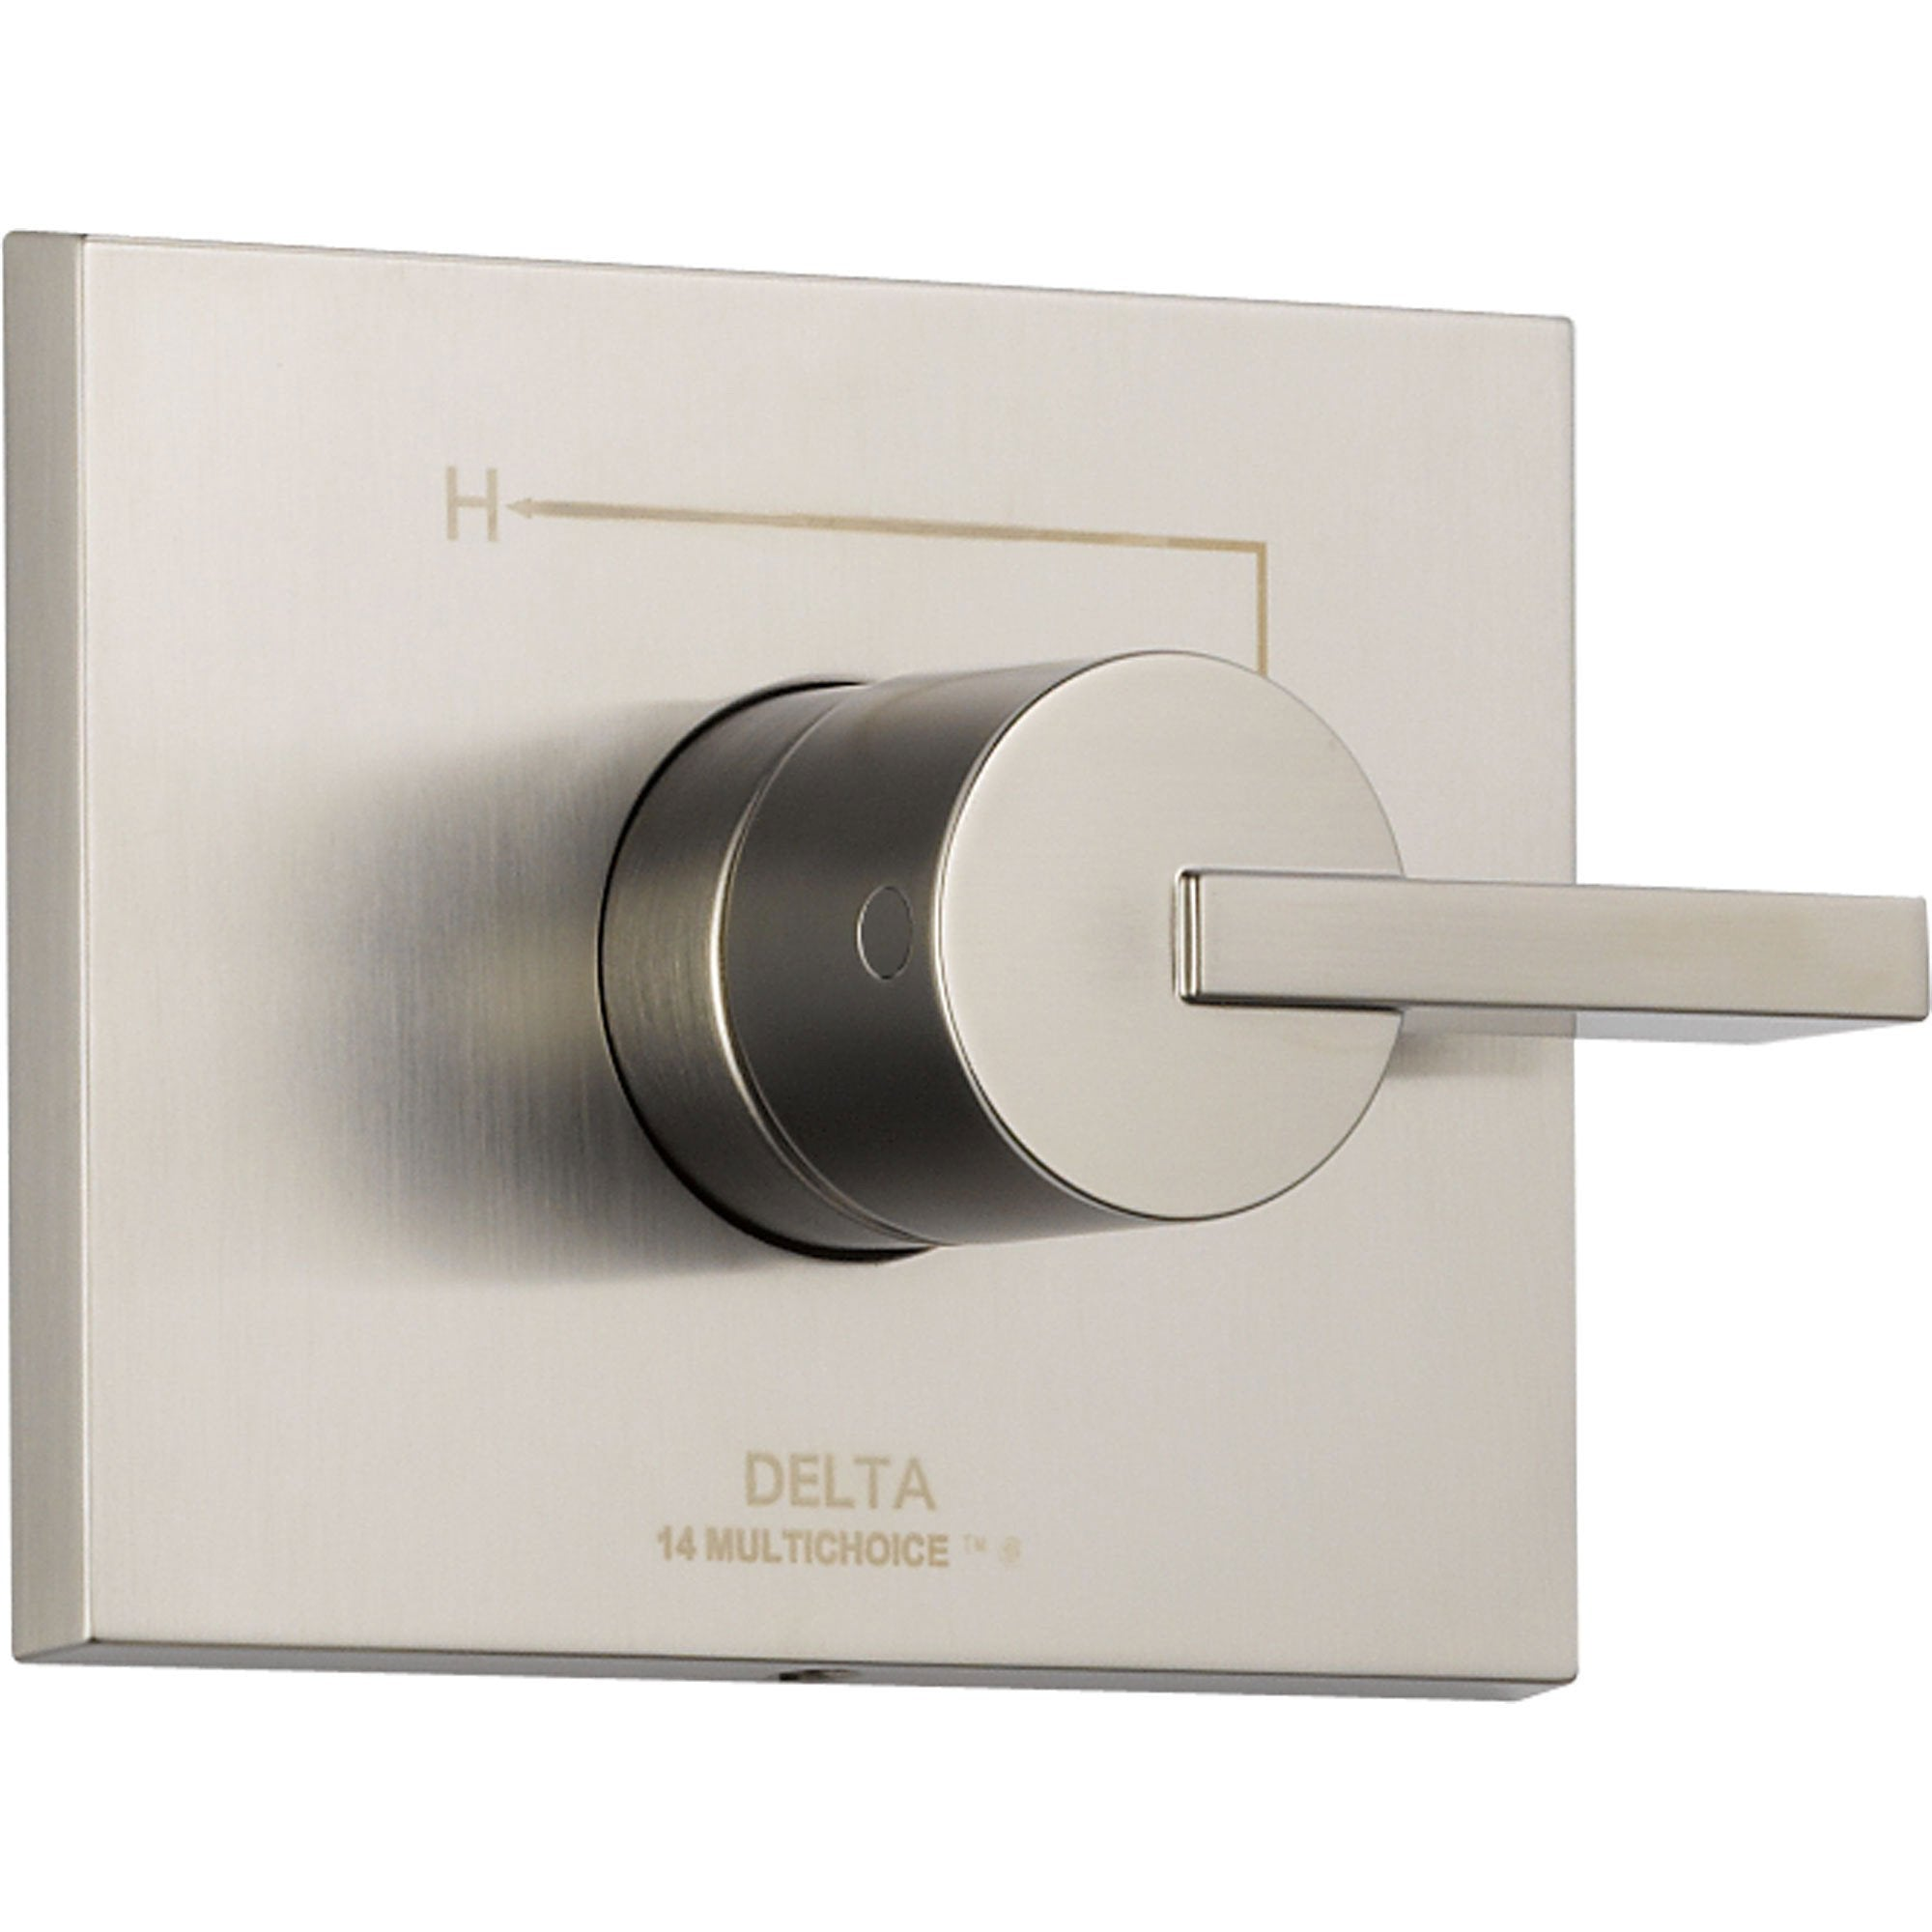 Delta Vero Stainless Steel Finish Single Handle Shower Control Trim Kit 521920